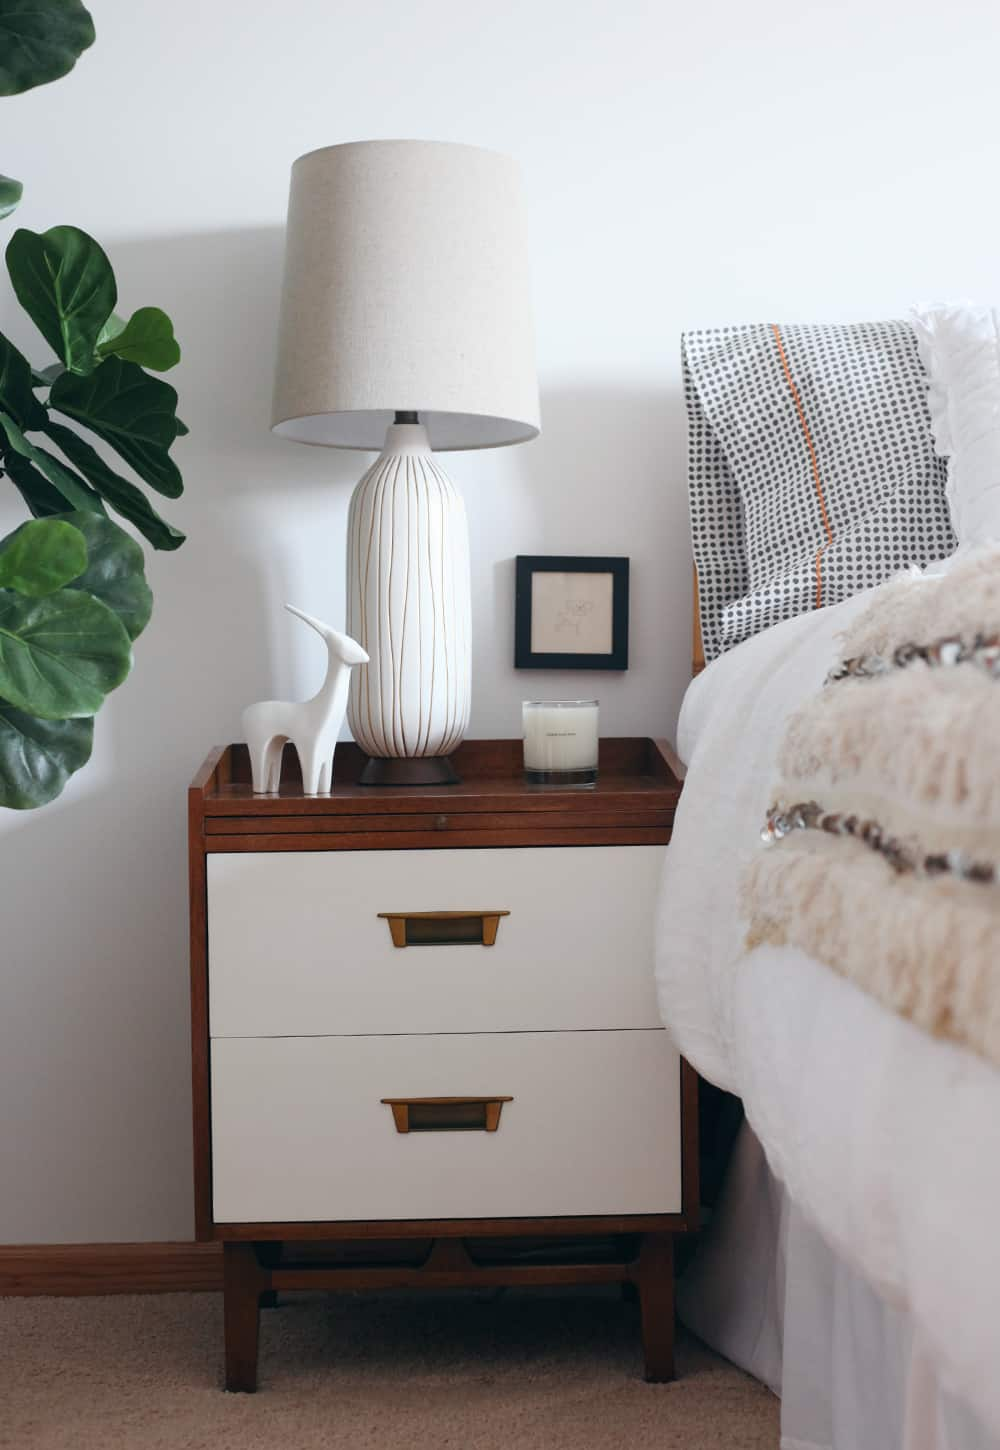 Cord Control And Cord Management For Nightstands Media